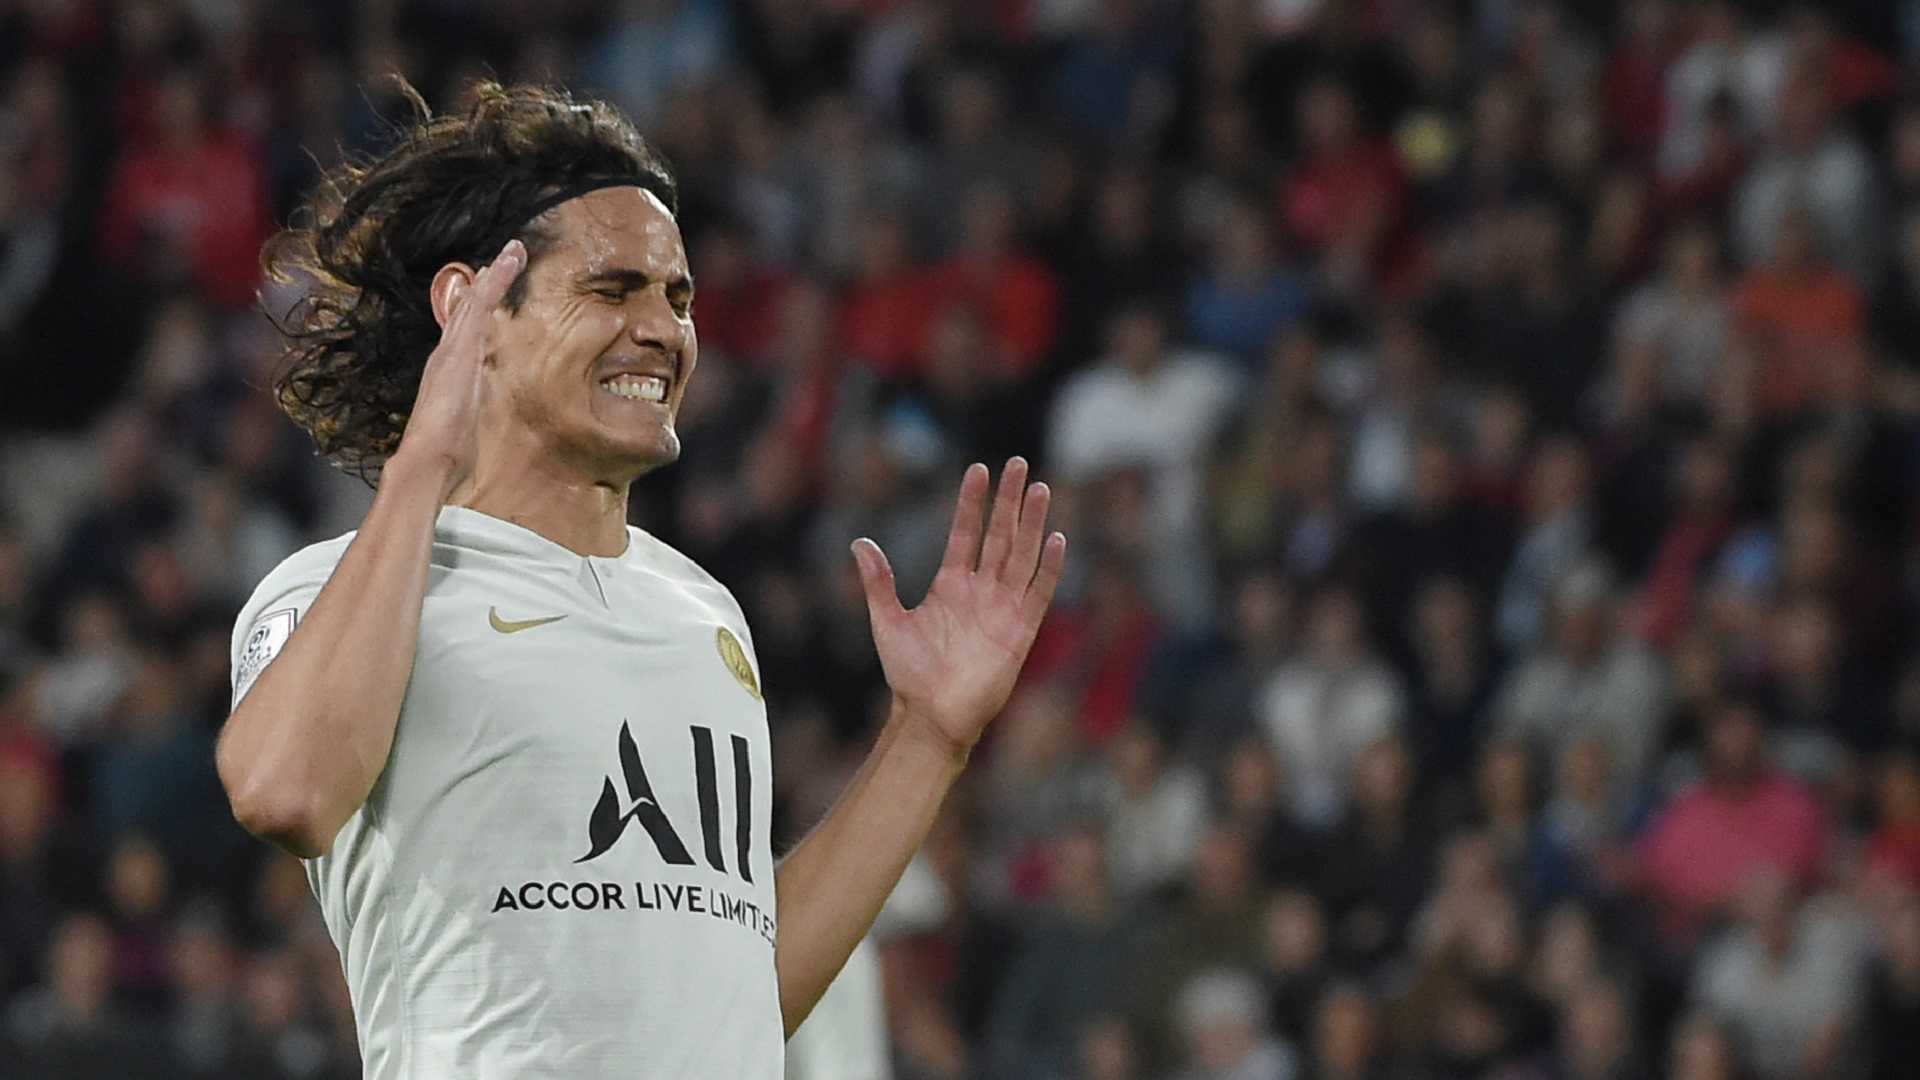 Cavani 'lacking rhythm and confidence' concedes Tuchel amid PSG exit rumours